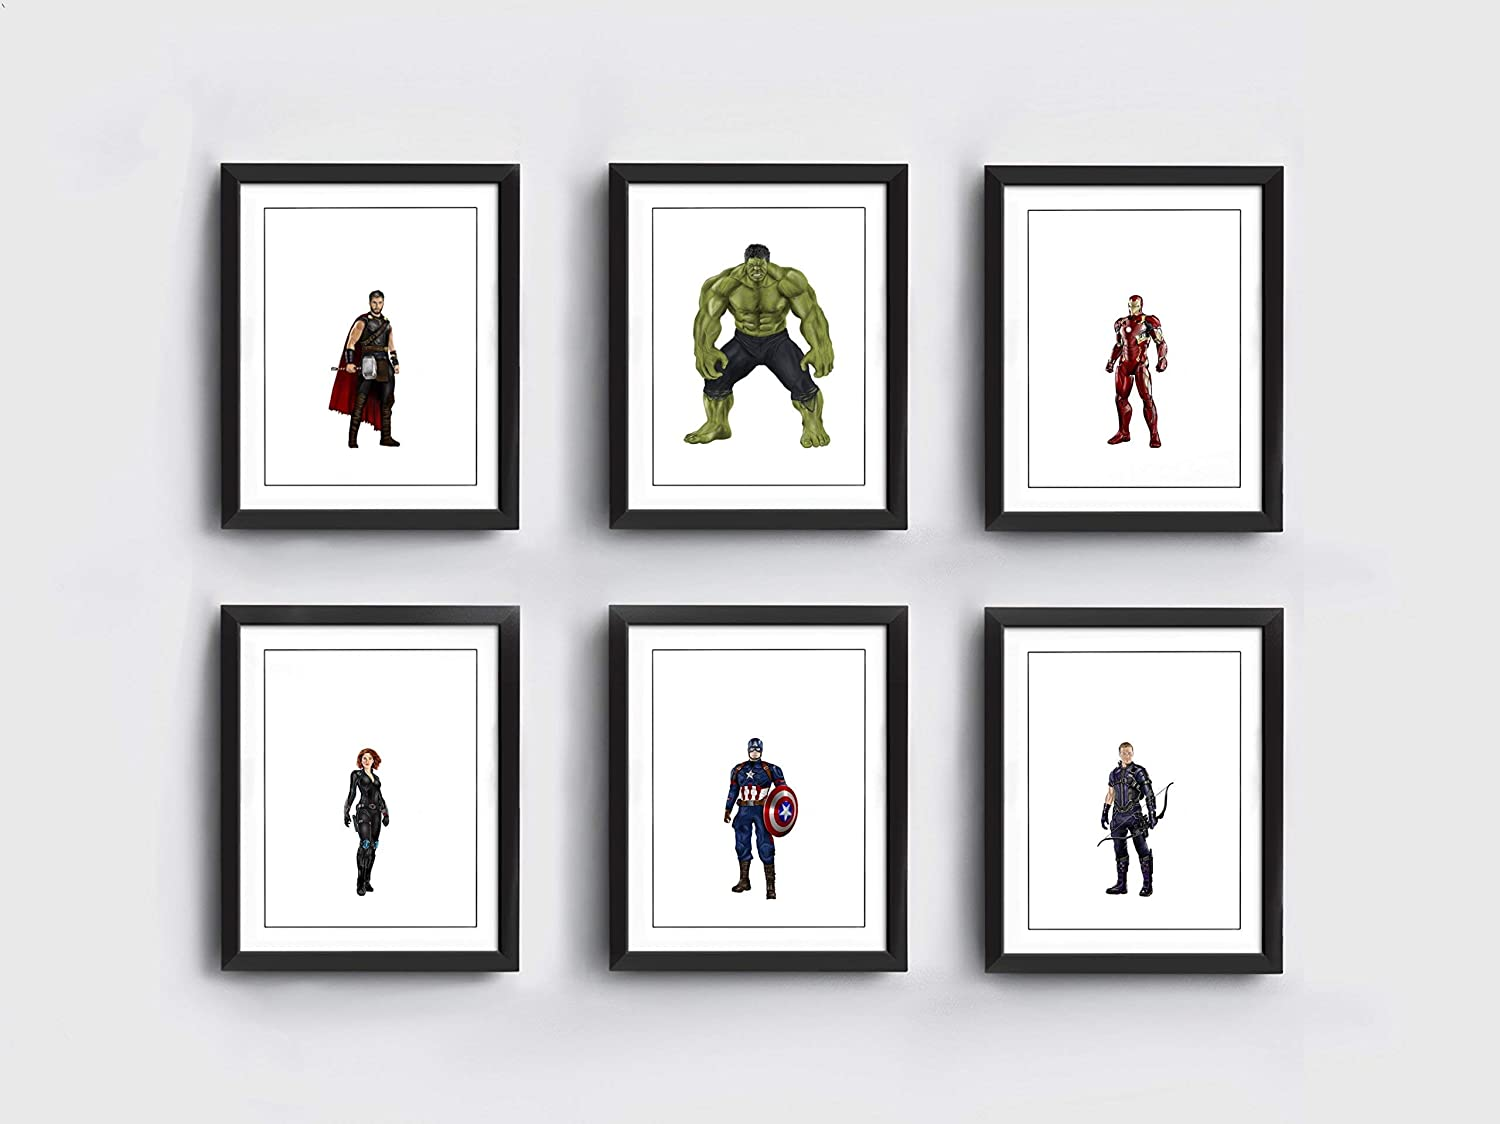 Avengers Art Prints | 10 x 8 inches | Thor | Hulk | Iron Man | Black Widow | Captain America | Hawkeye | Hand Drawn